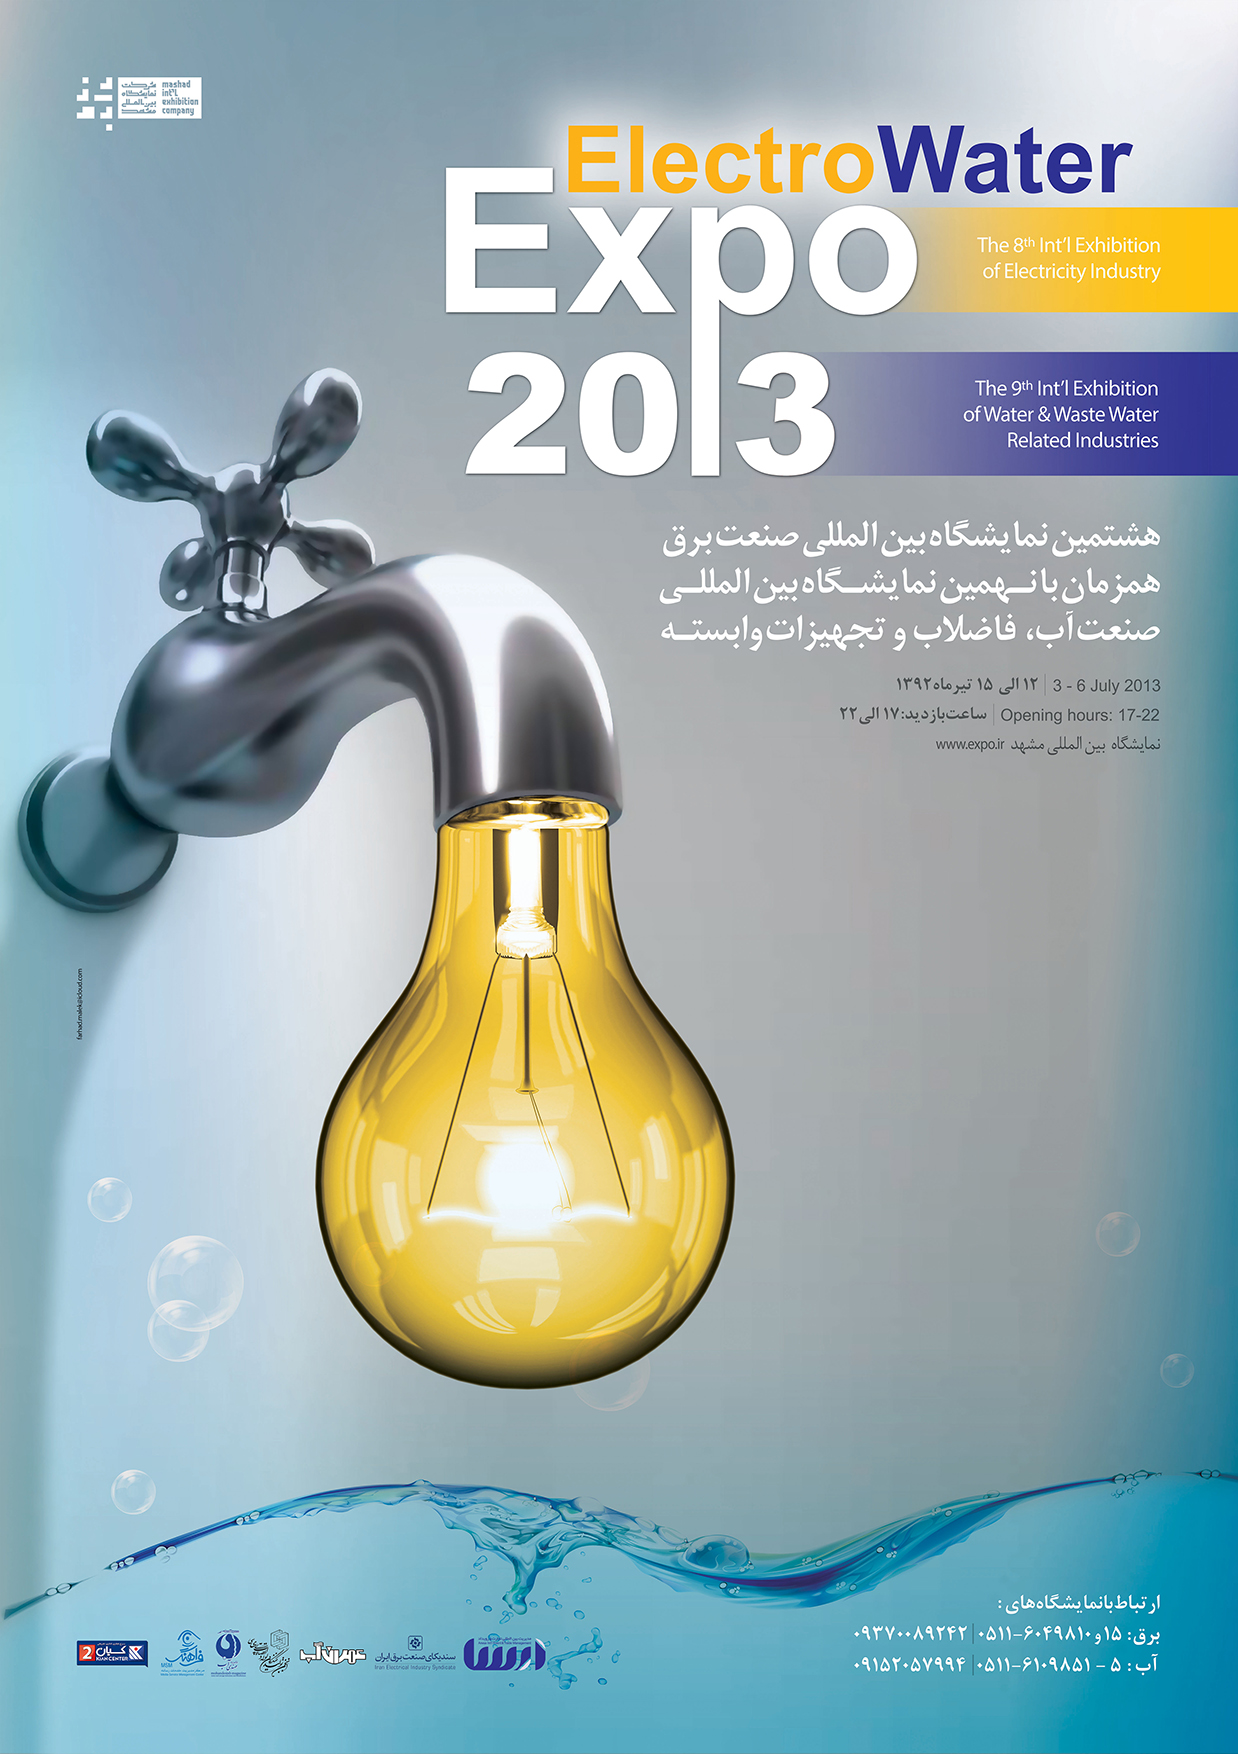 Electro & Water Expo Poster